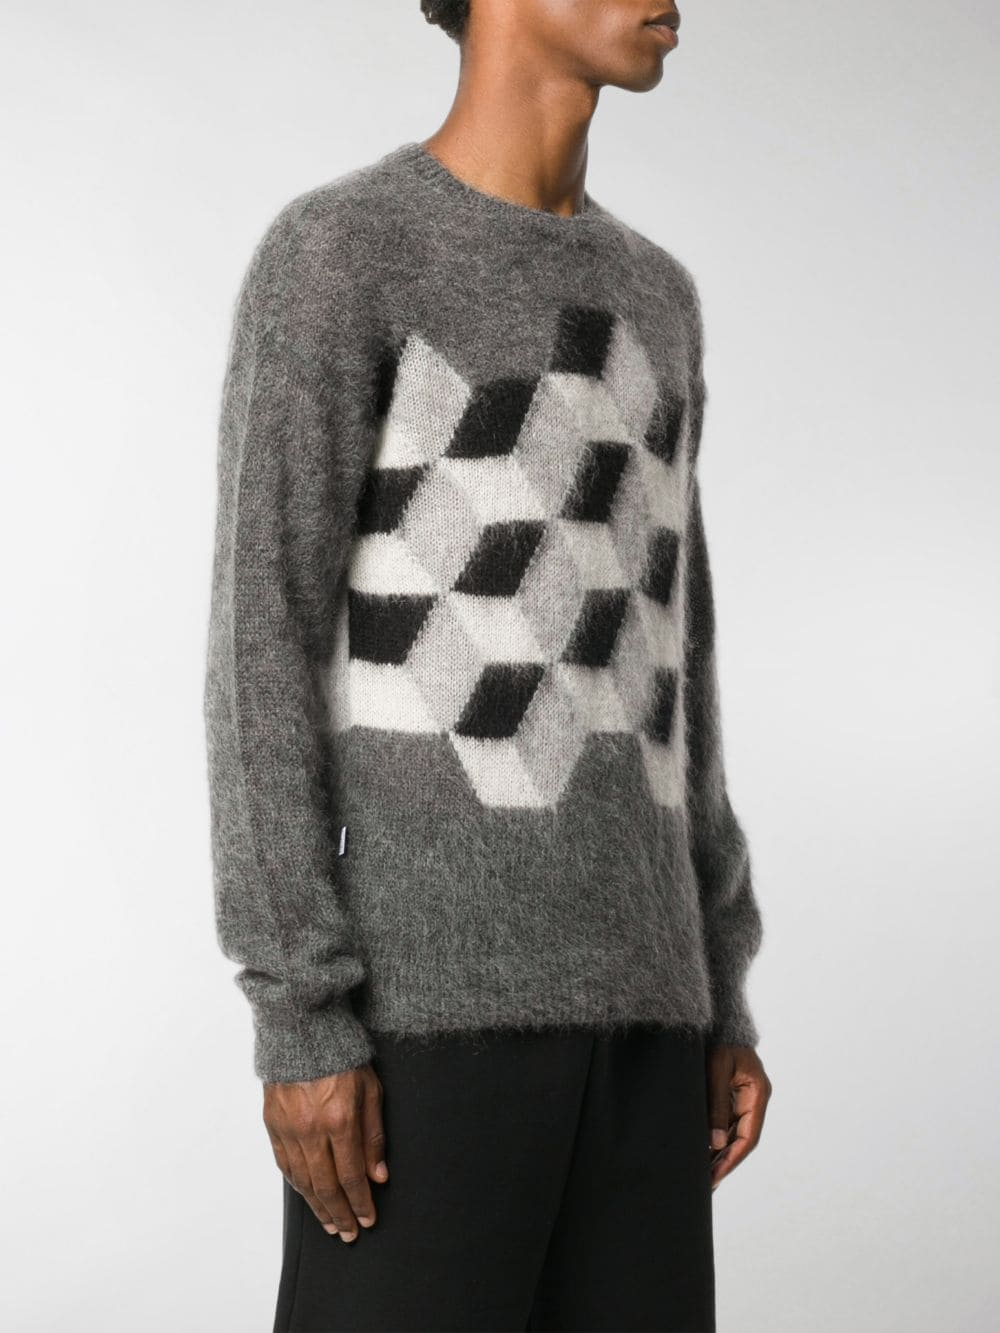 mohair wool grey pull-over with 3D square front print  MONCLER GENIUS |  | 9C702-00-A9486987